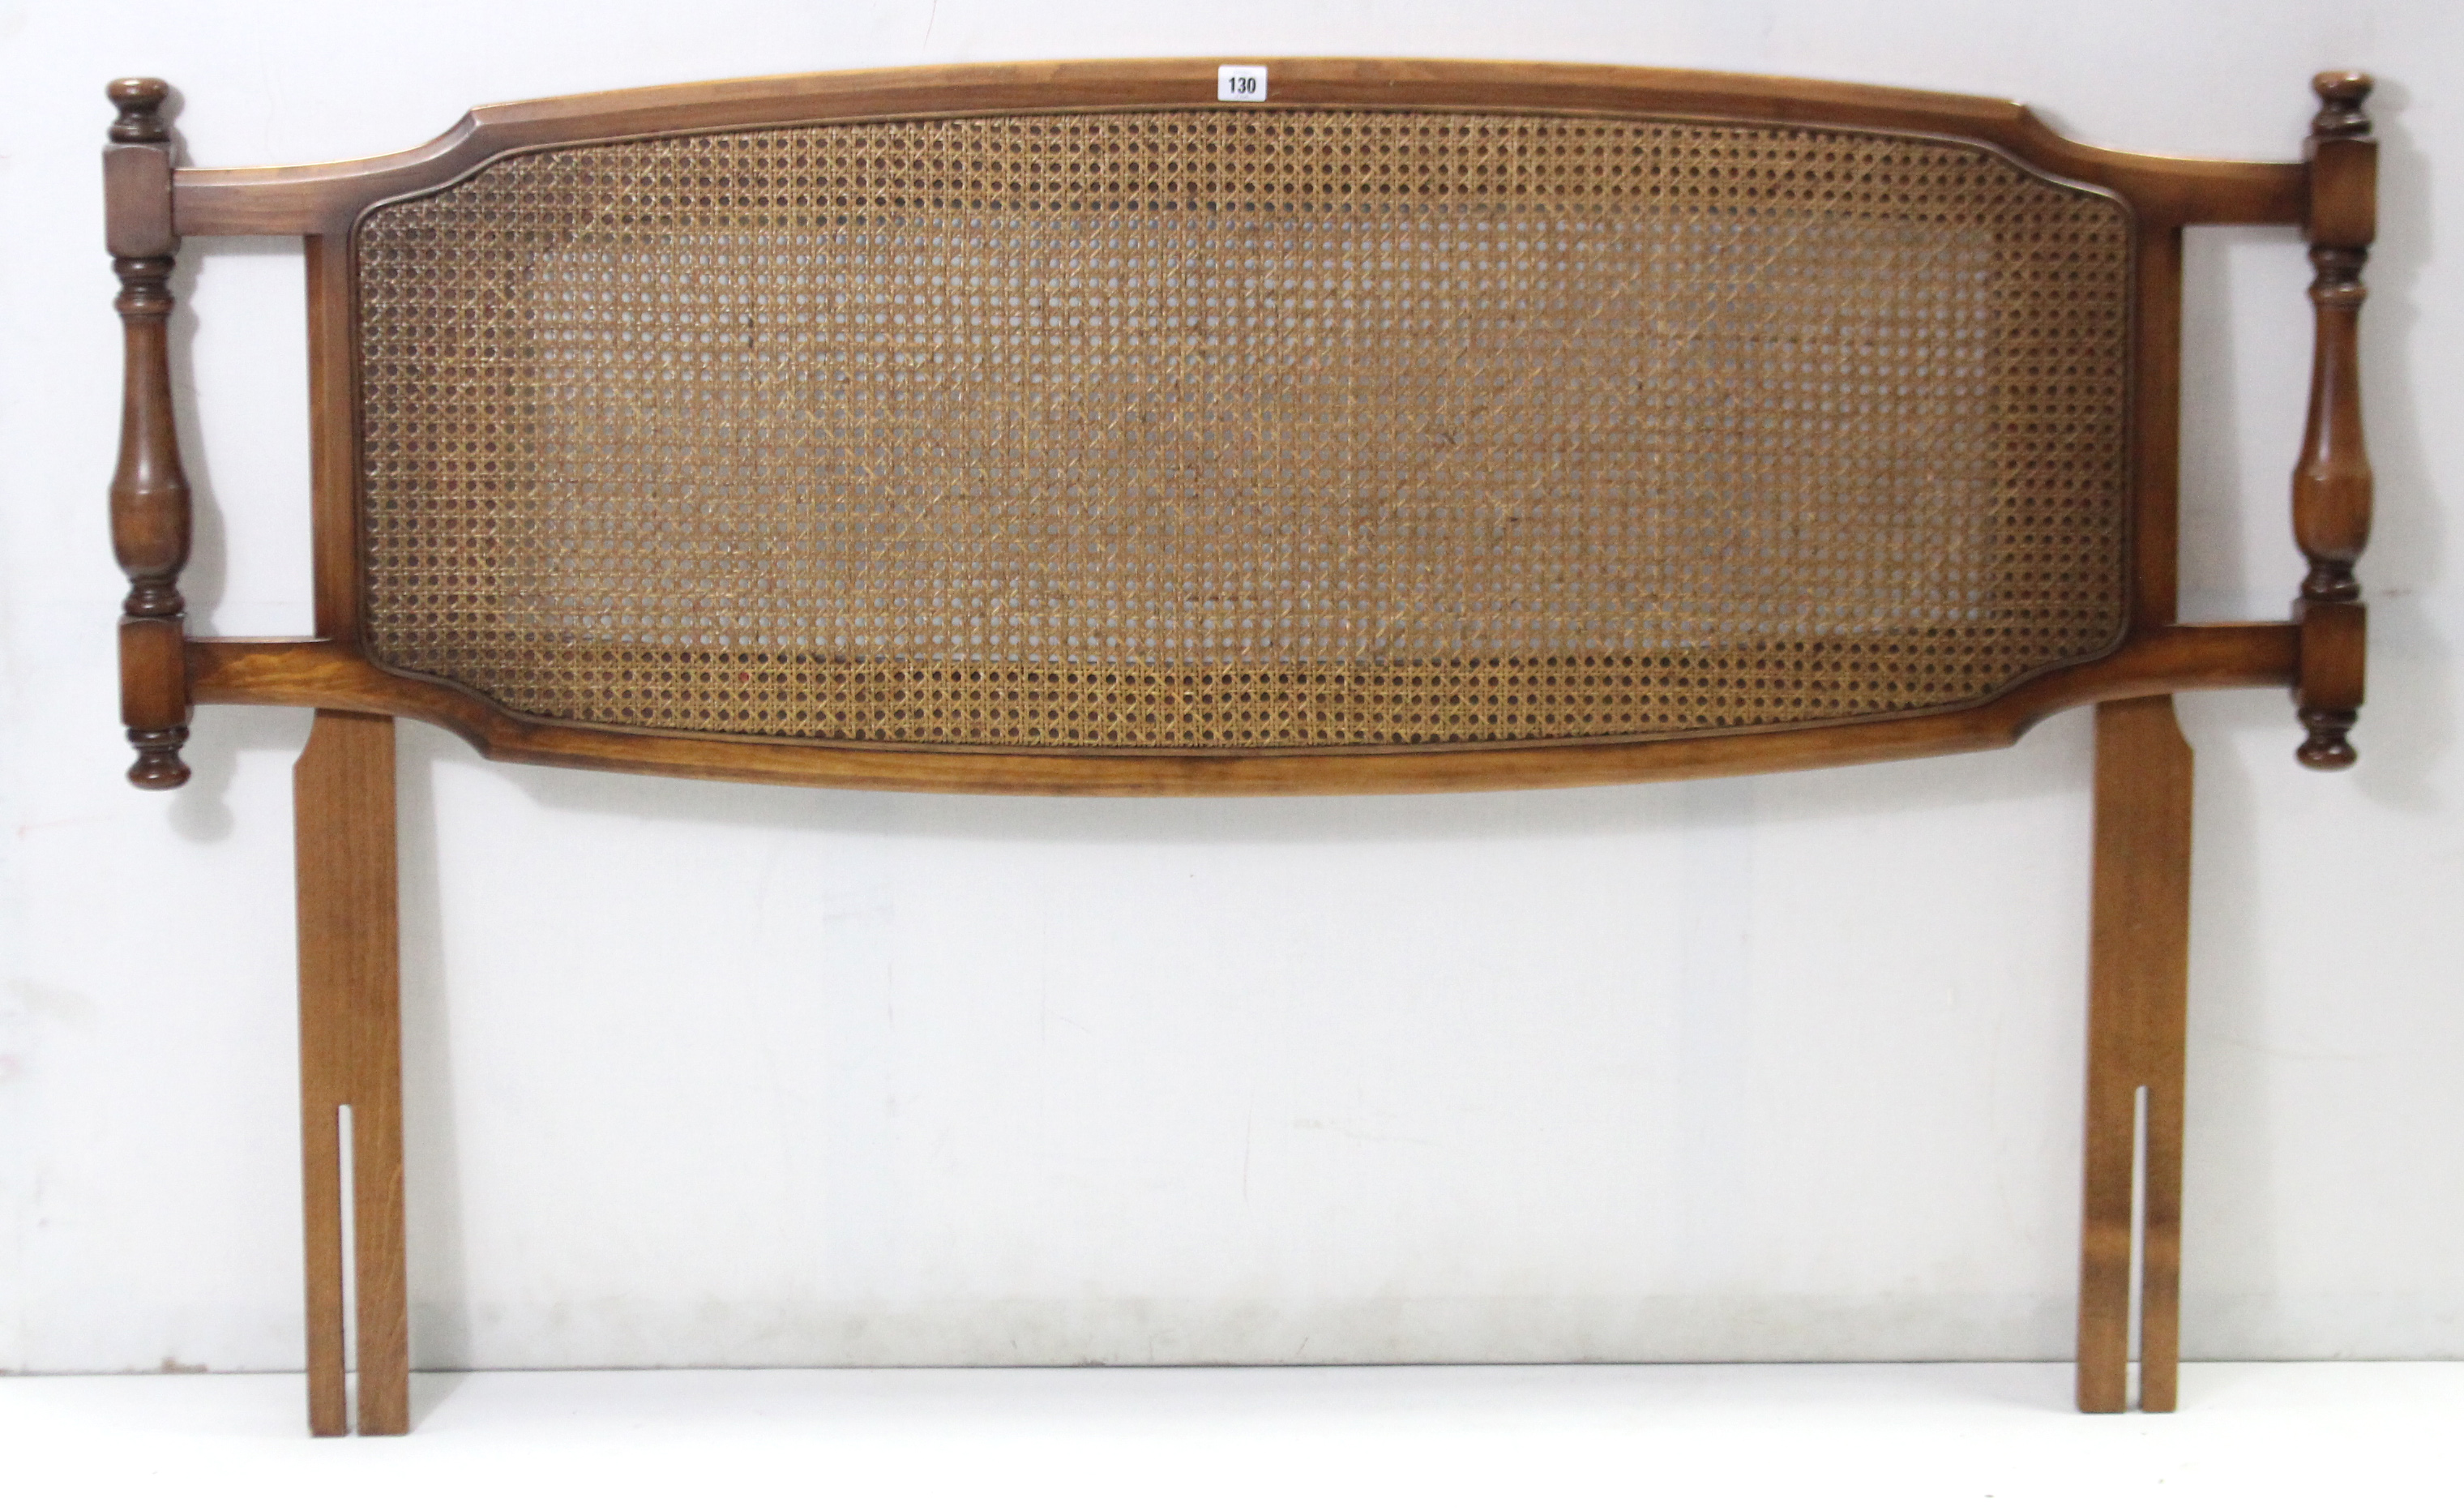 "Lot 130 - A brass frame fire screen inset mesh front, 26¼"" wide; together with a mahogany box commode, 19½"""